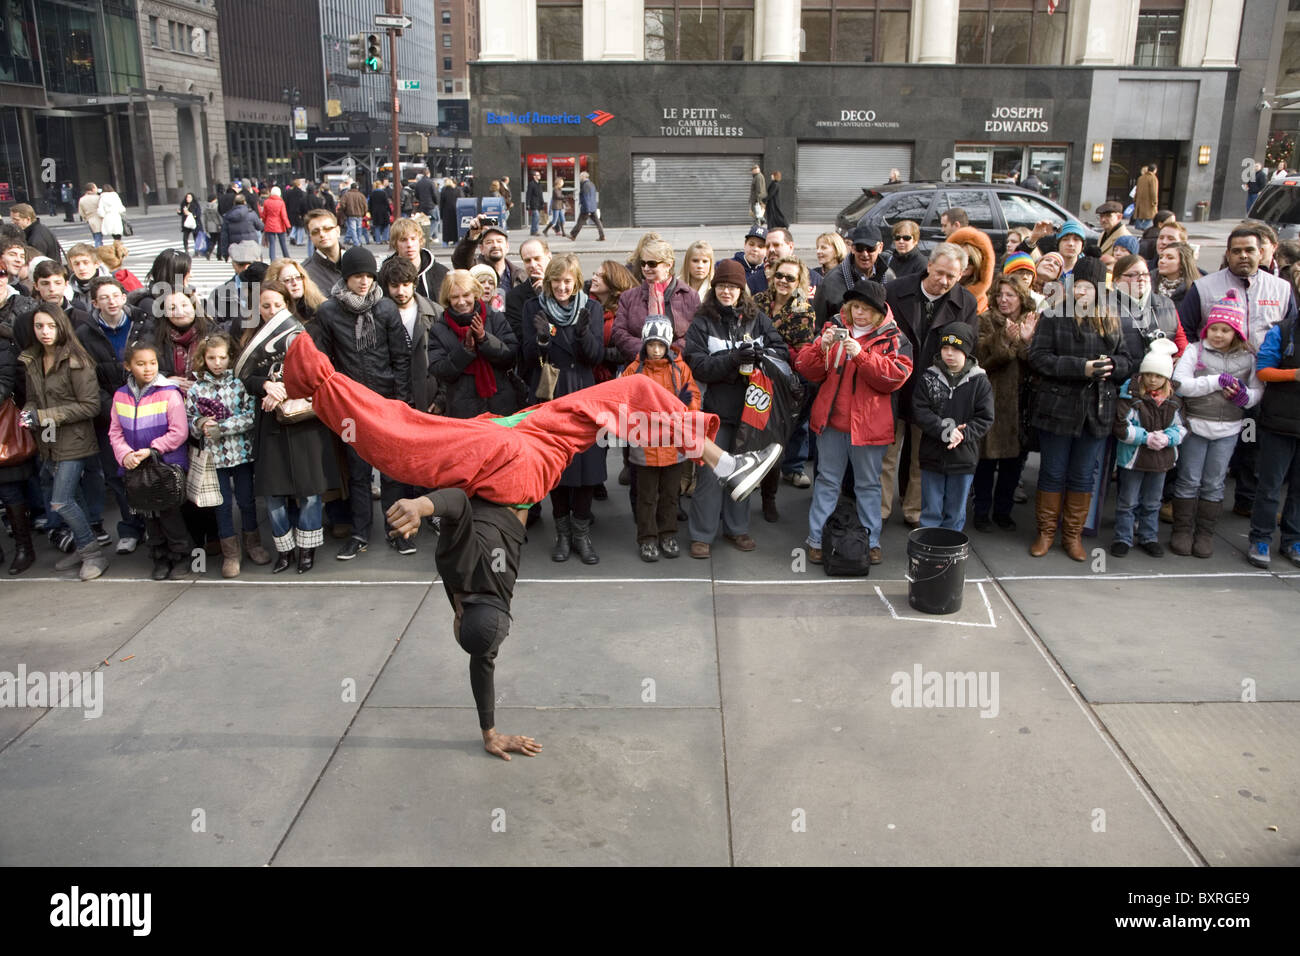 Break Dancers entertain the crowds in front of the NY Public Library on 5th Ave. during the holiday season in NYC. - Stock Image